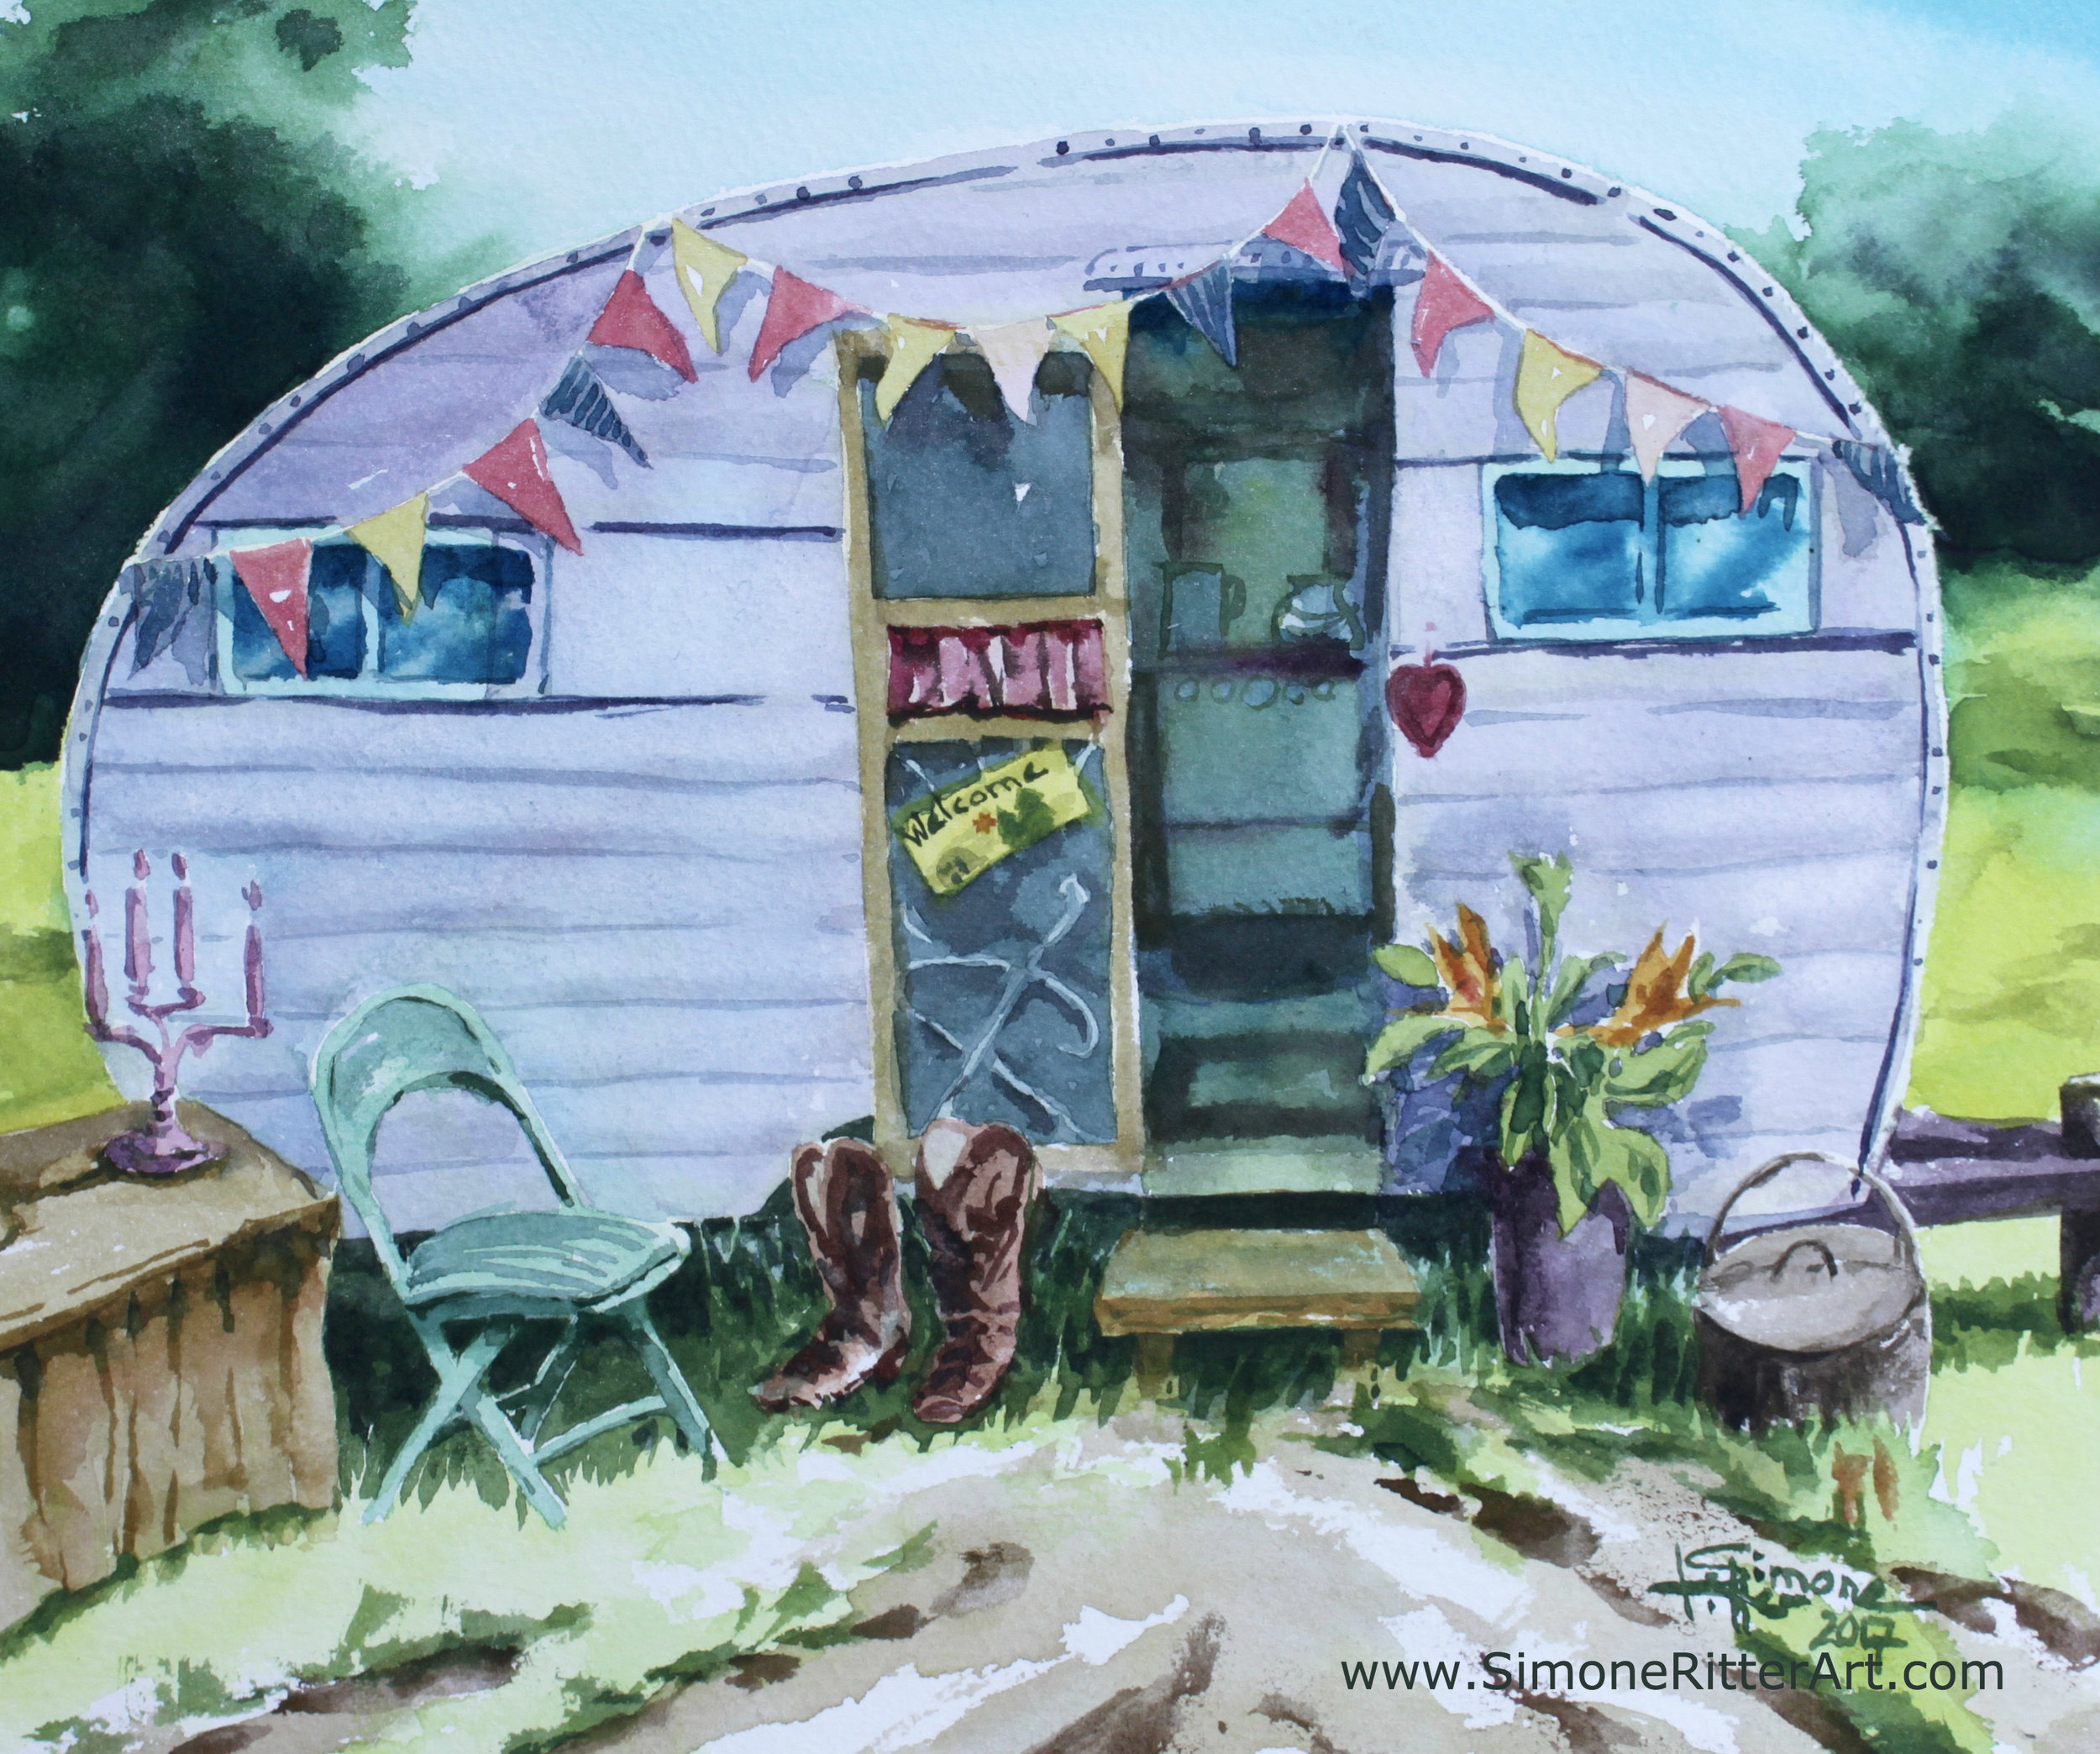 Simone-Ritter-Art-1953-King-Camper-Queenie-2017-watercolour.jpg